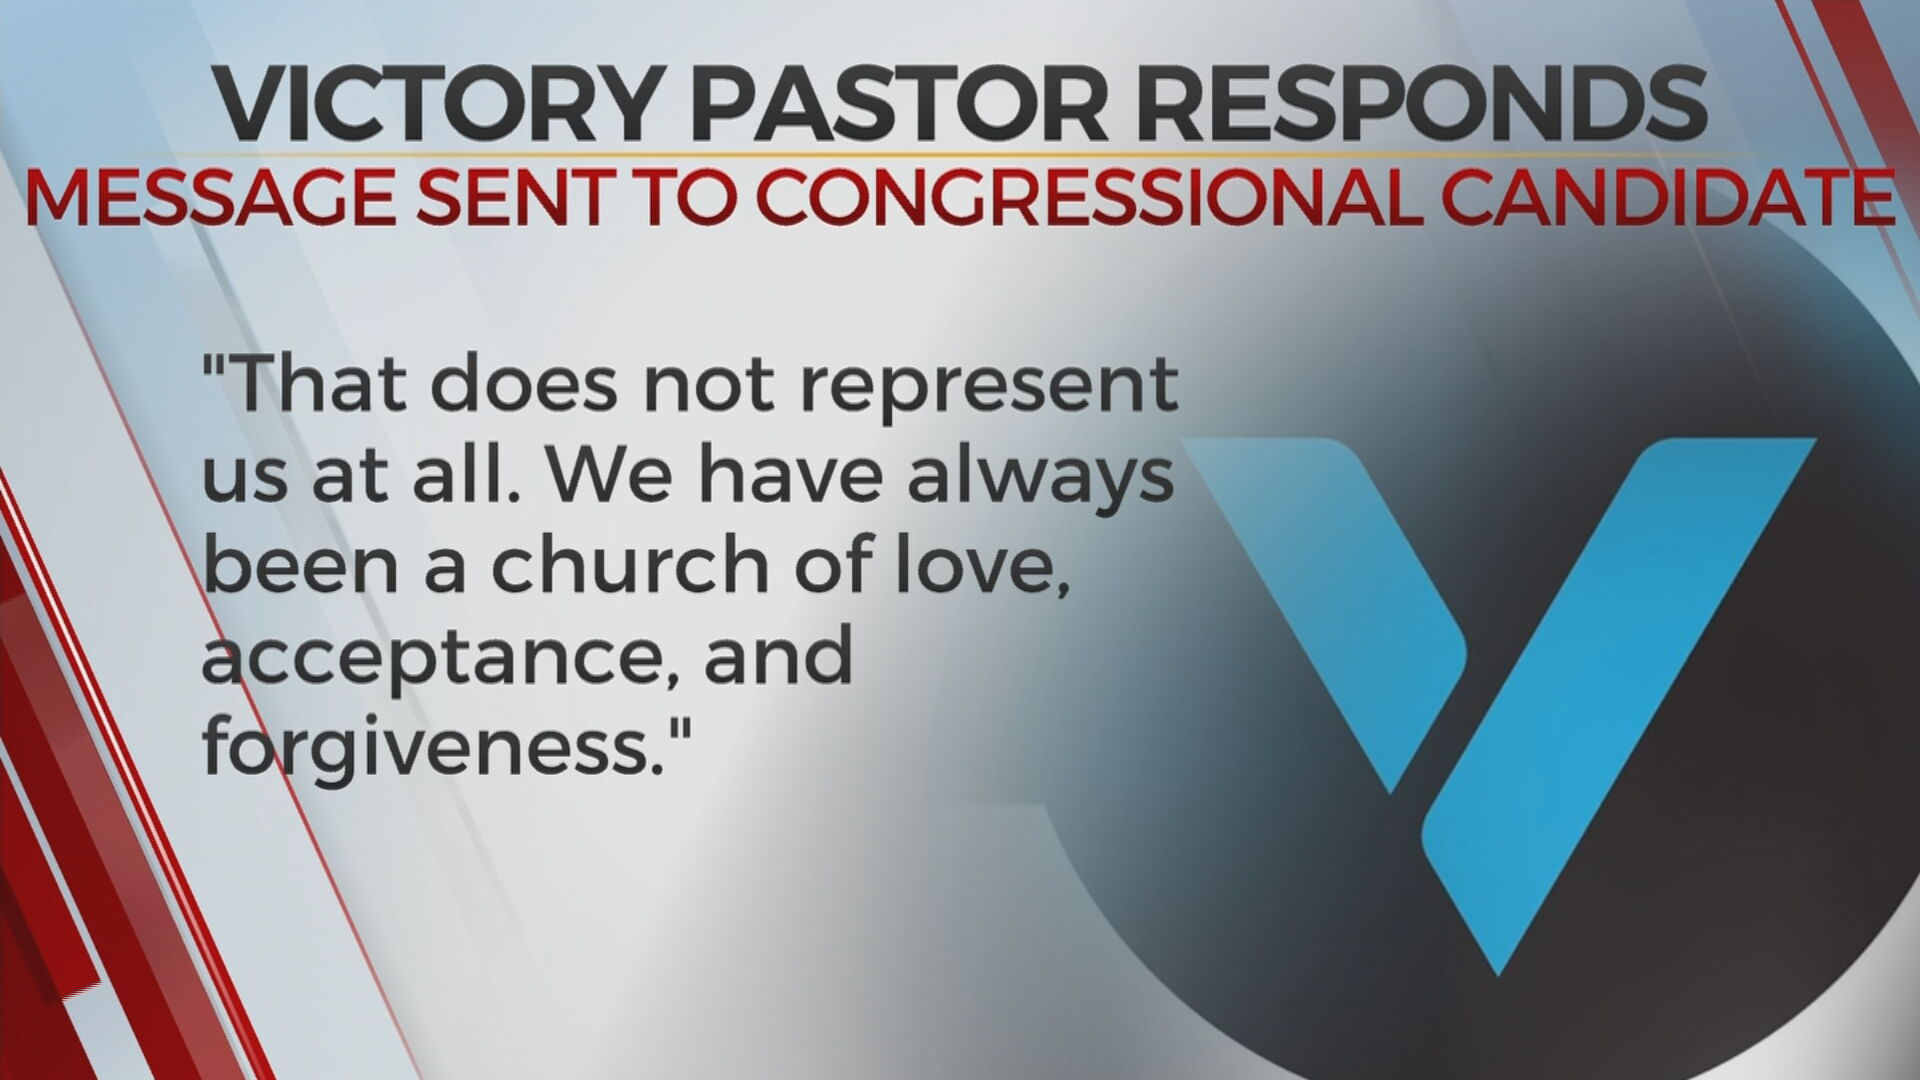 Pastor Condemns Remarks Made By Employee About Congressional Candidate